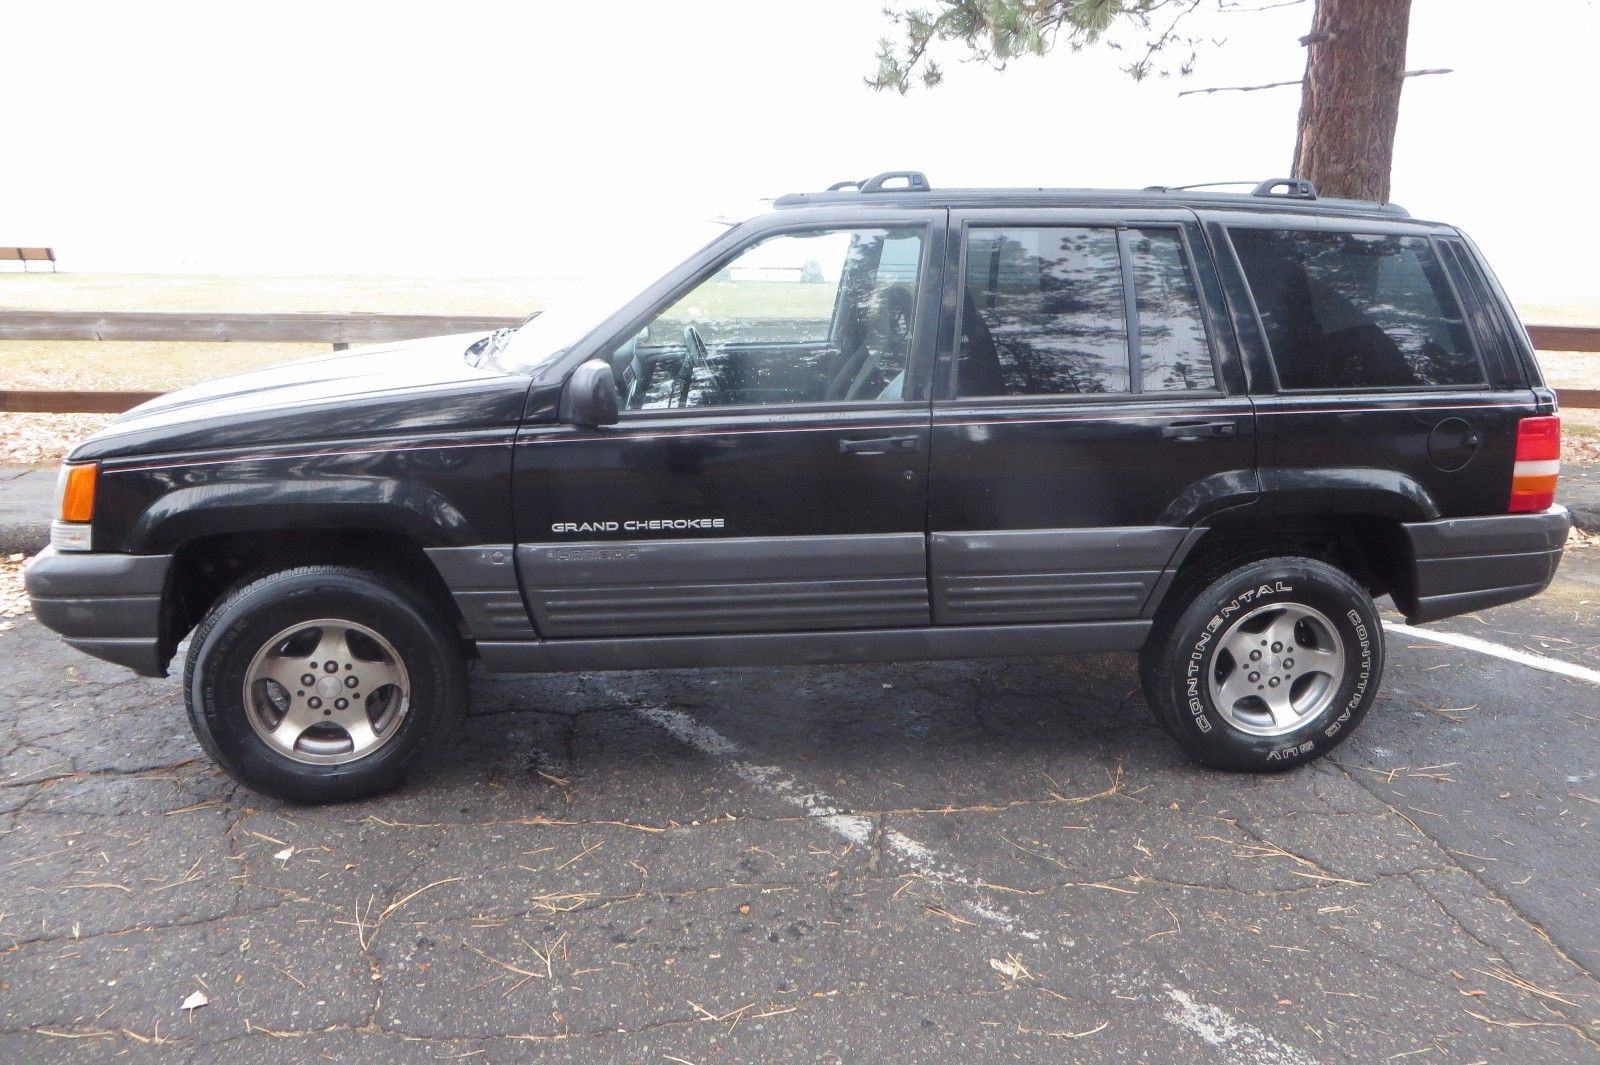 Awesome 1997 Jeep Grand Cherokee Laredo Sport Utility 4 Door Jeep Grand  Cherokee Laredo Sport Package CA Black Utility 4Door 4.0L LOW RESERVE  2017/2018